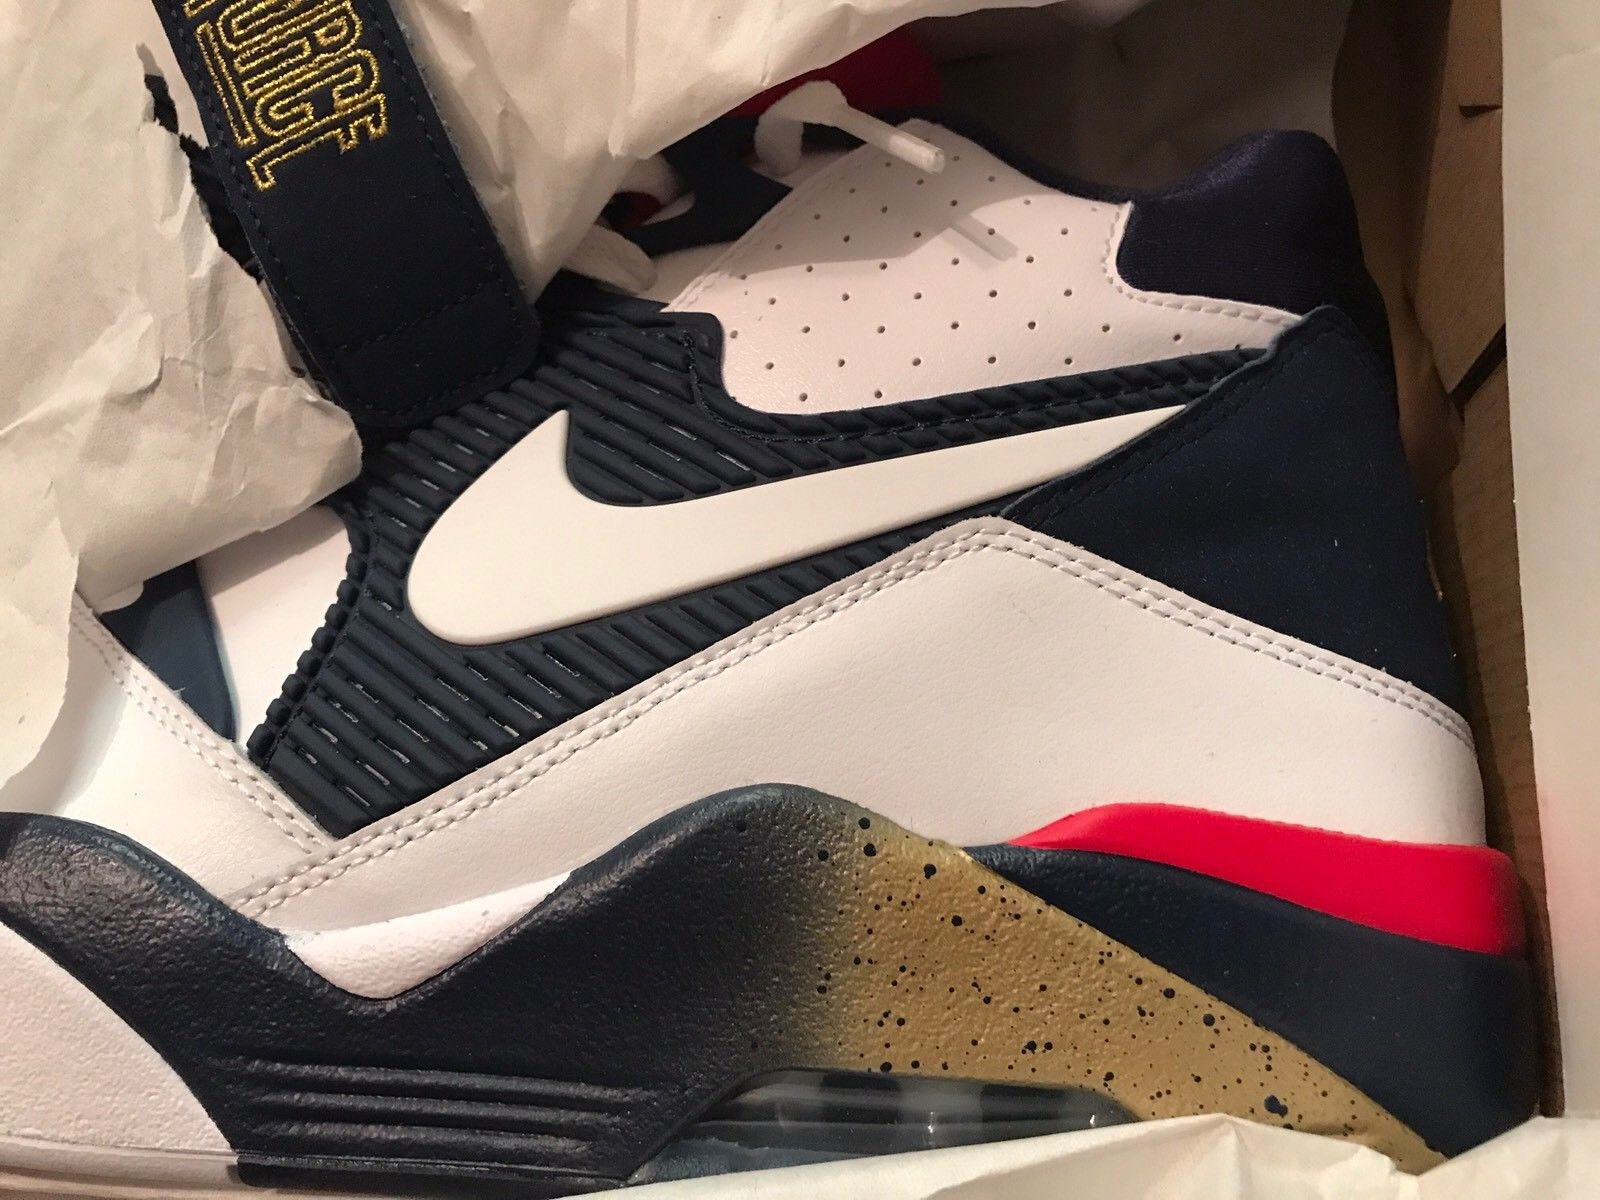 Image of Nike Air Force 180 size 13 Charles Barkley USA Dream Team-White Gold Blue - New